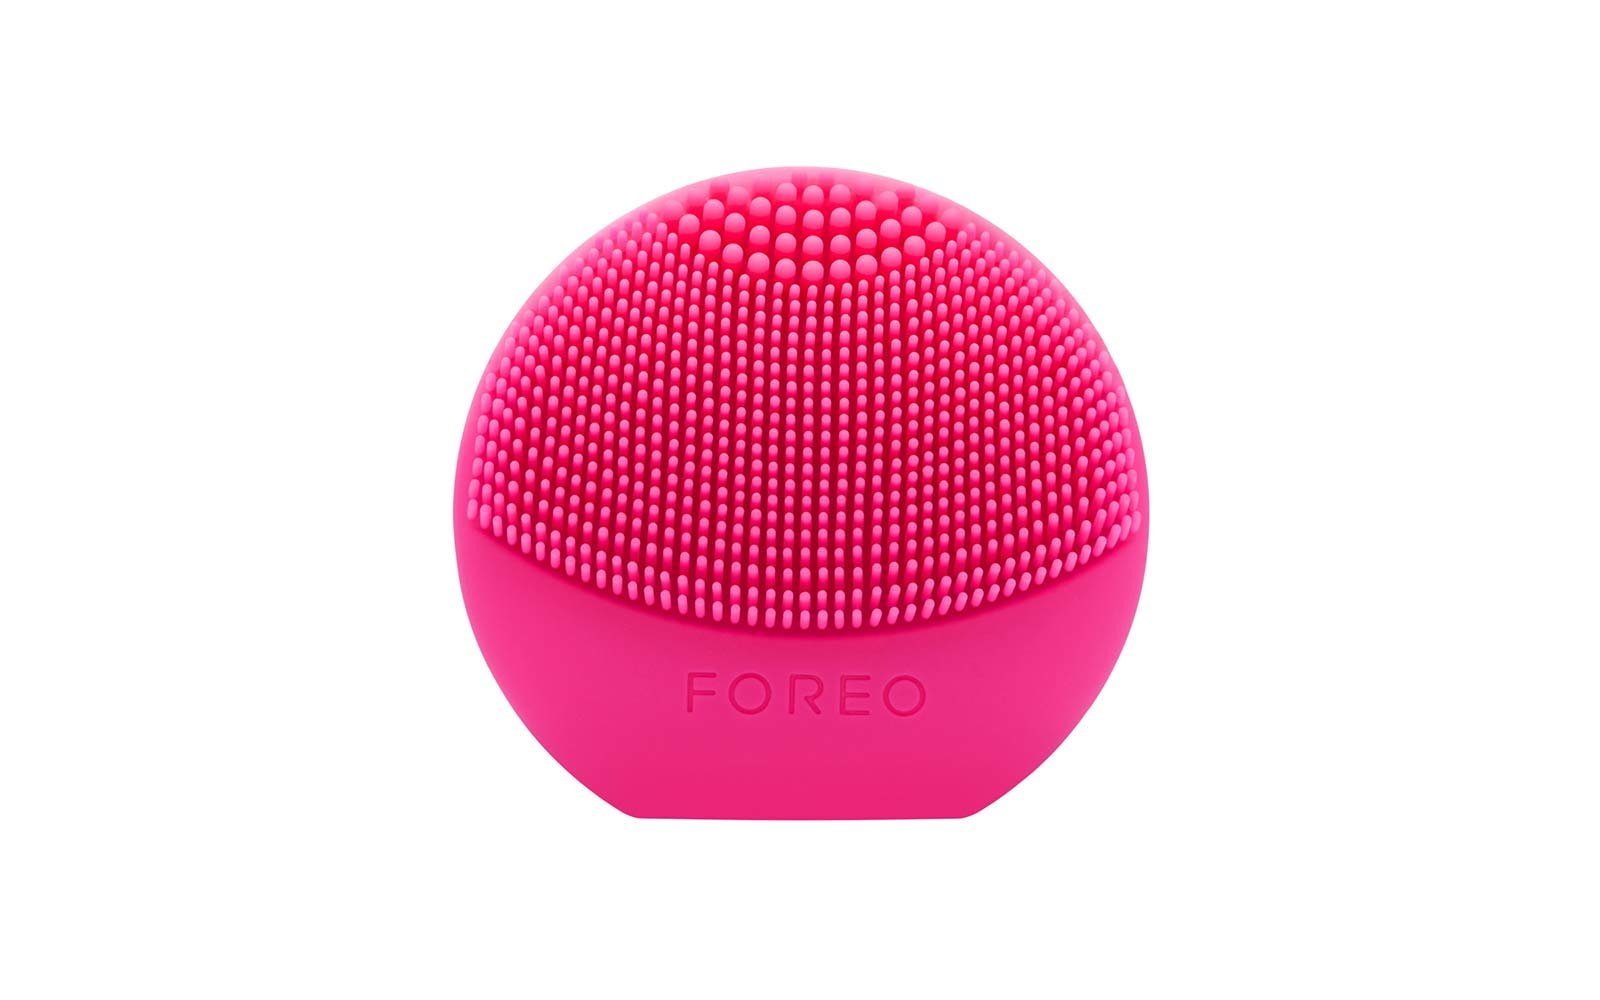 foreo face brush neiman marcus holiday extravaganza